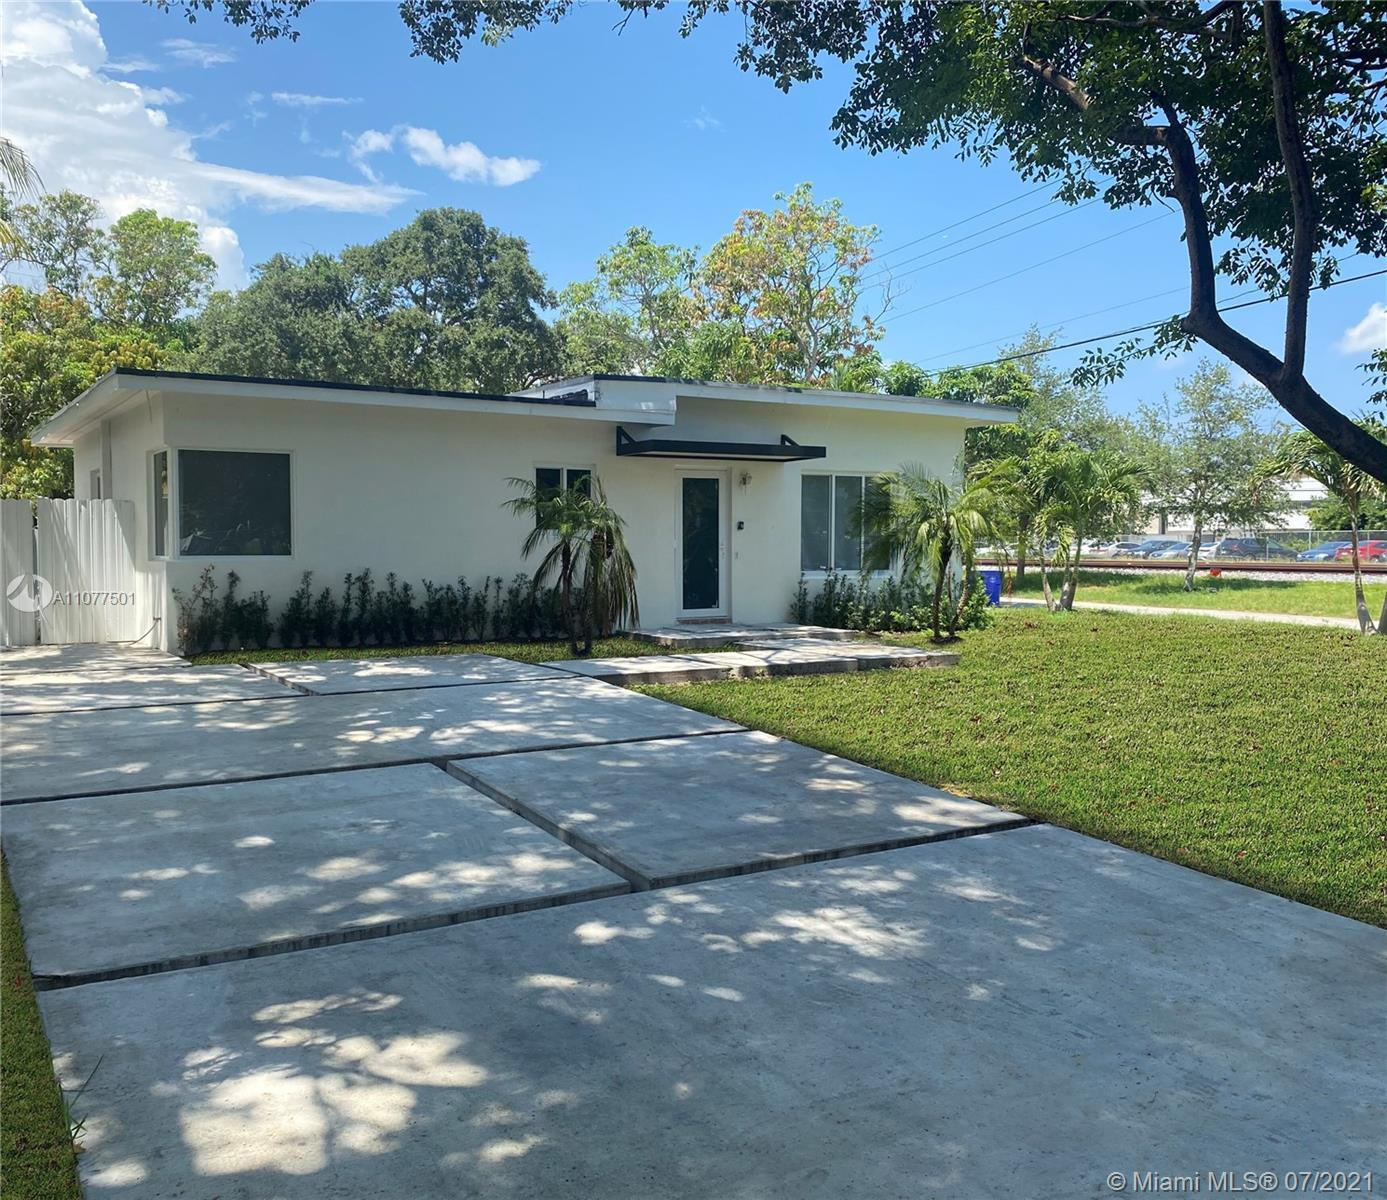 5% to buyers agent - Fully Renovated 2021 including Brand new roof/Brand new porcelain floor/ Brand